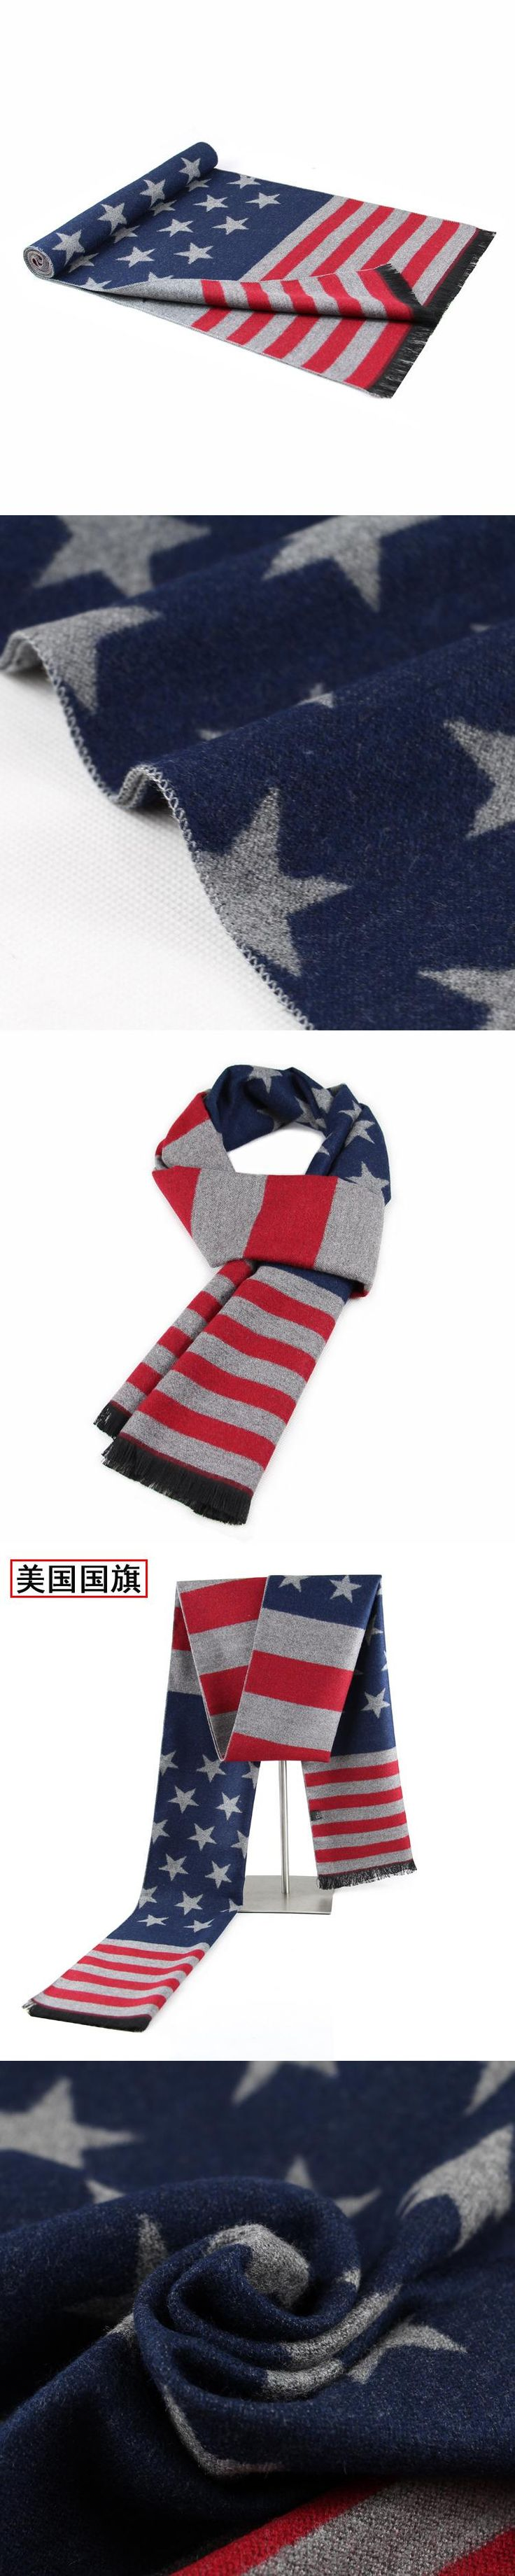 Men Scarf Manufacturer New Fashion American Flag Scarves Processing Undertakes Young Students Scarf Christmas Gift B-5870